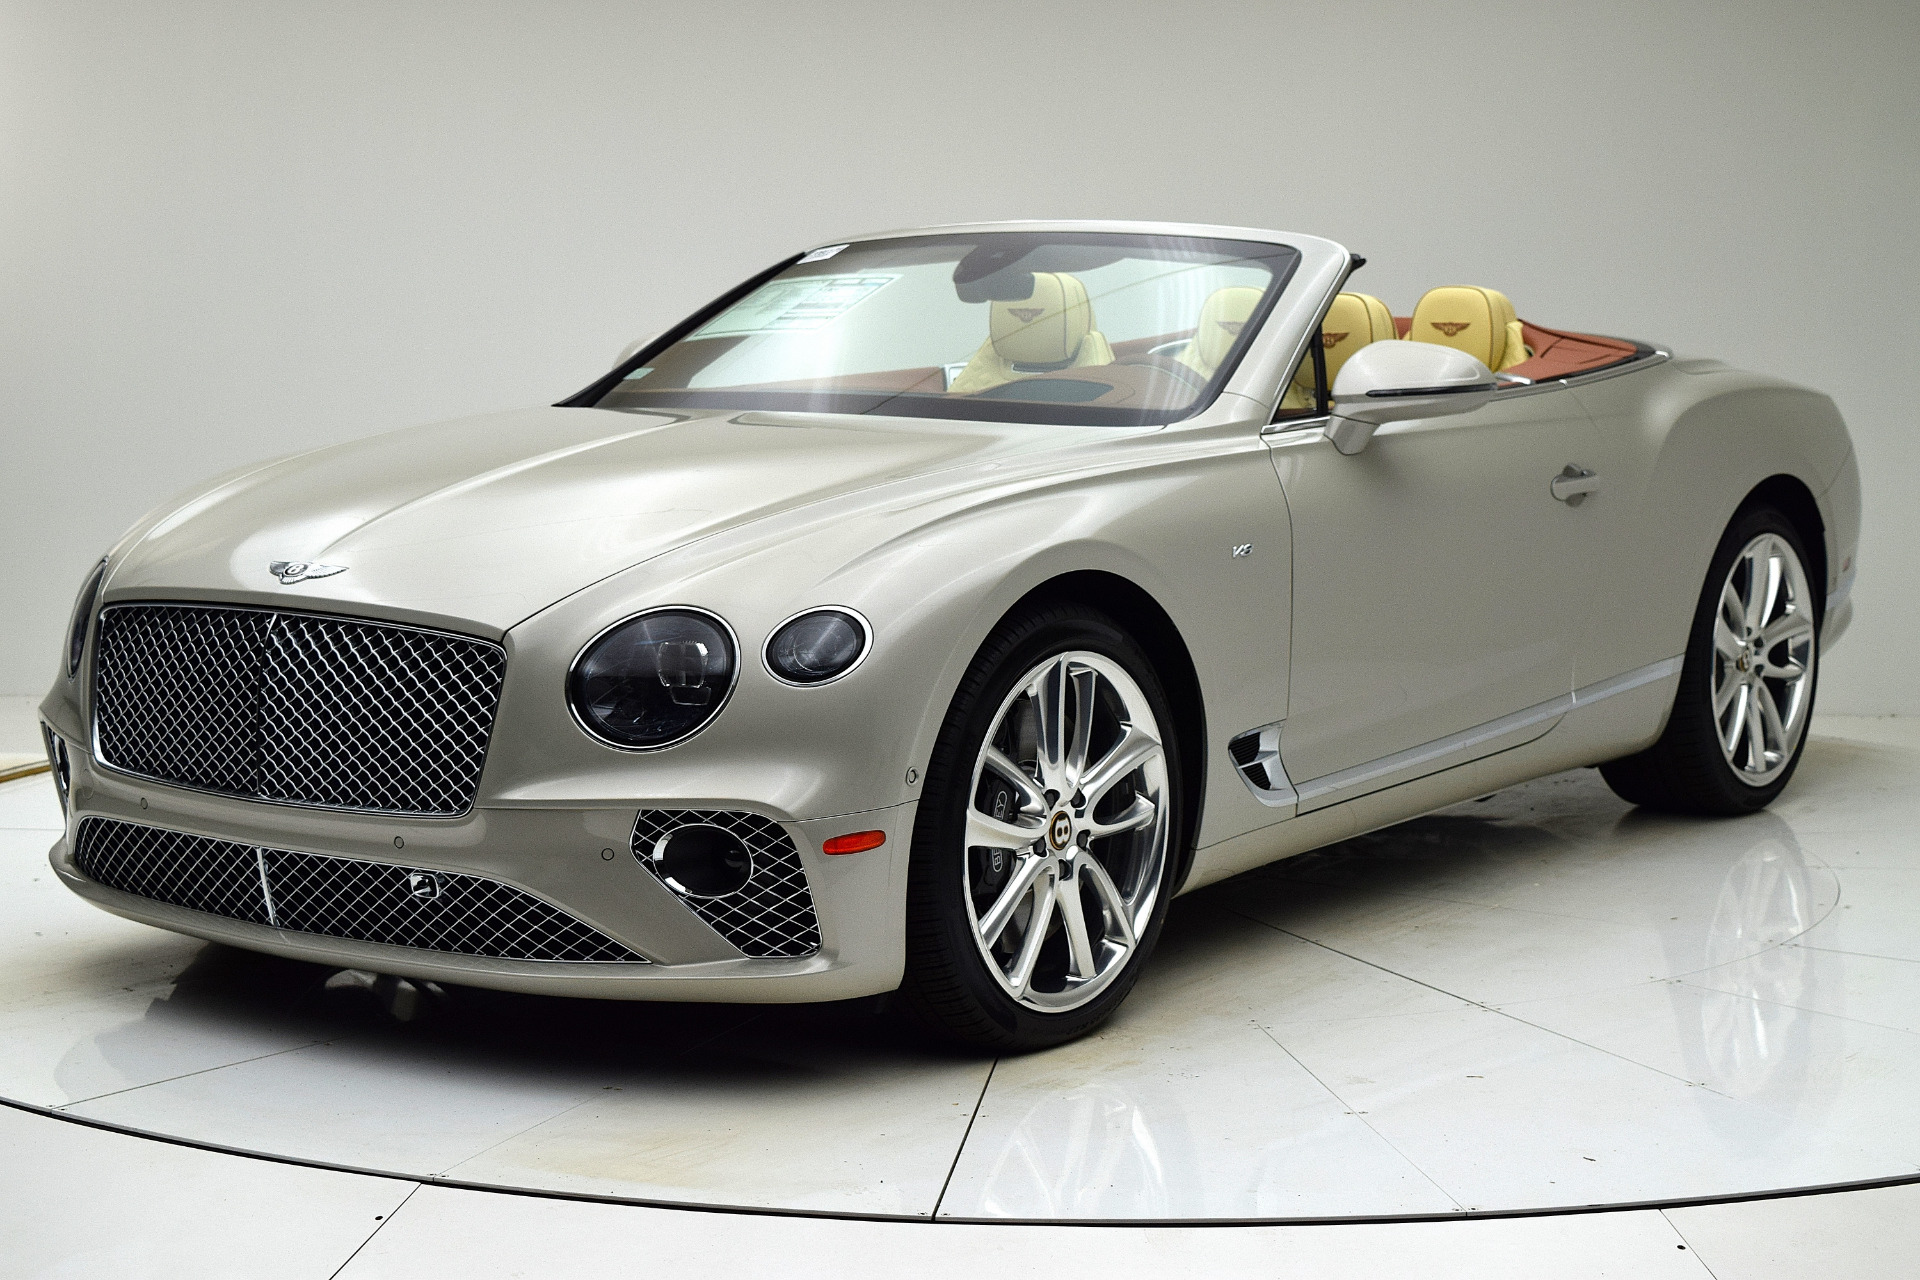 Used 2020 Bentley Continental GT V8 for sale Sold at Bentley Palmyra N.J. in Palmyra NJ 08065 2